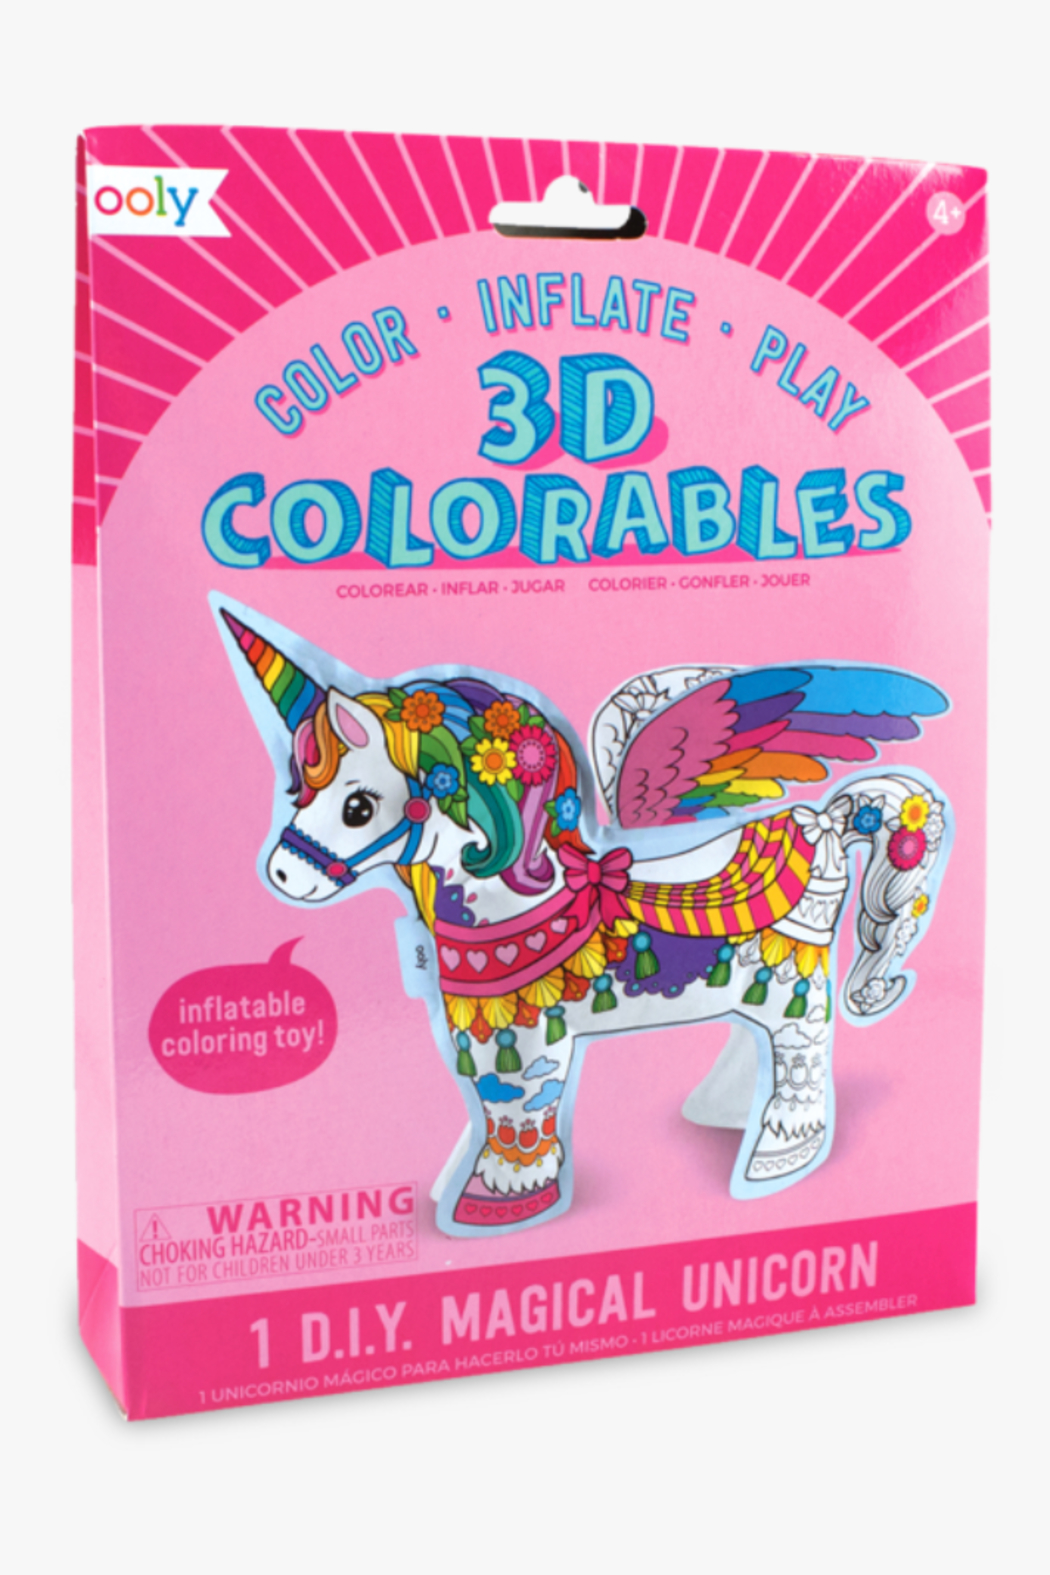 Ooly 3D Colorables Magical Unicorn - Main Image